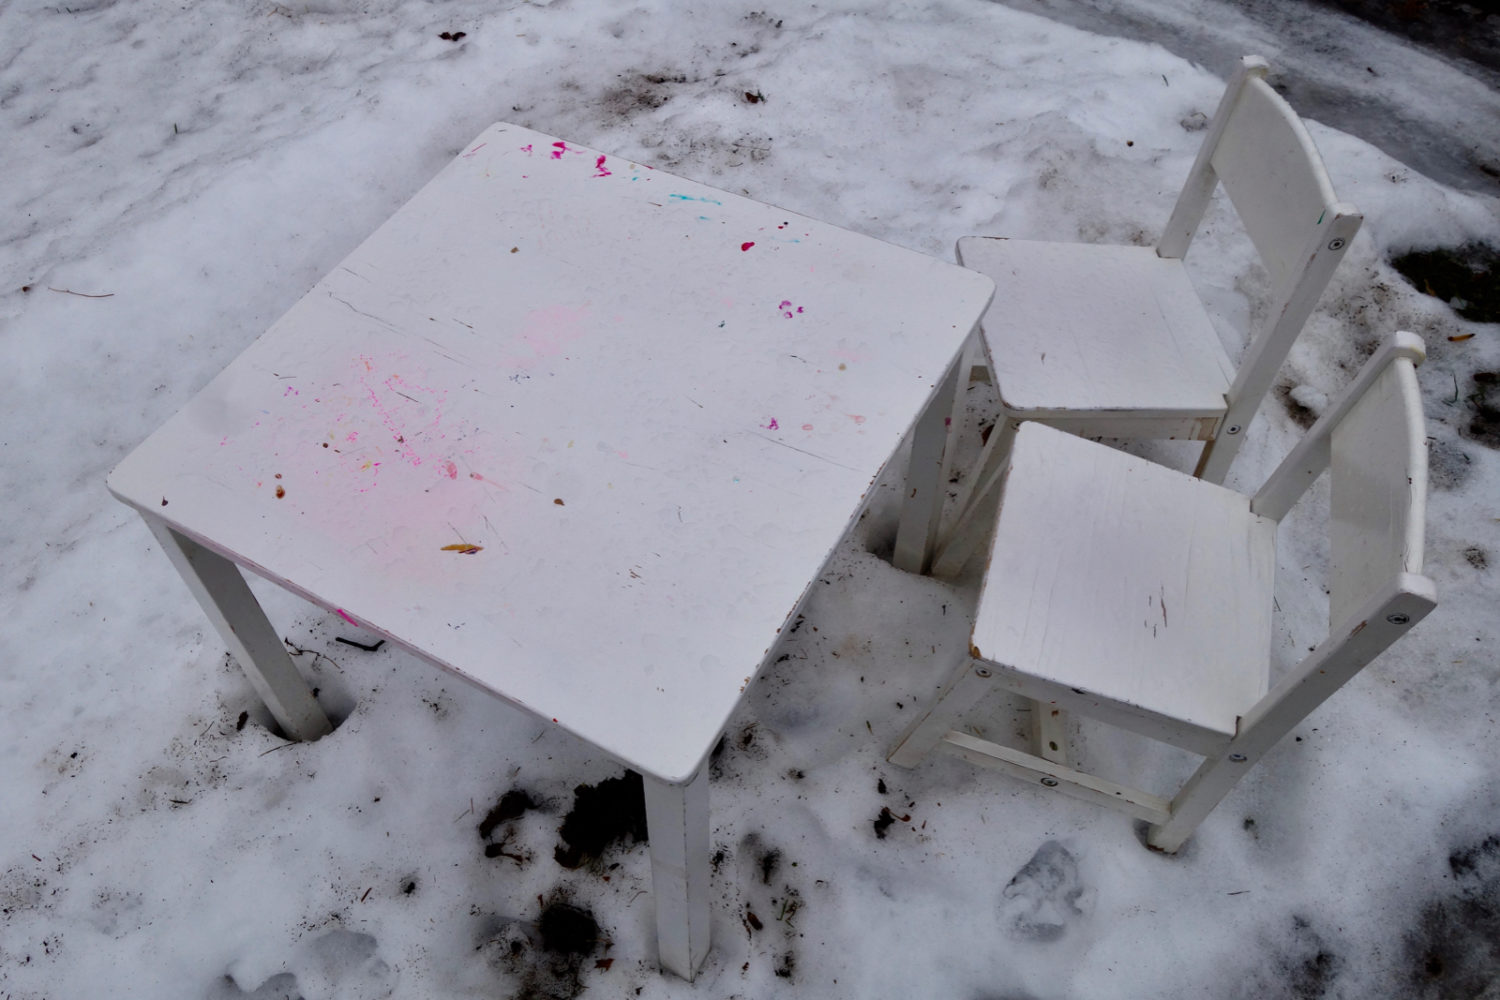 Small white table and chairs by the street in the snow